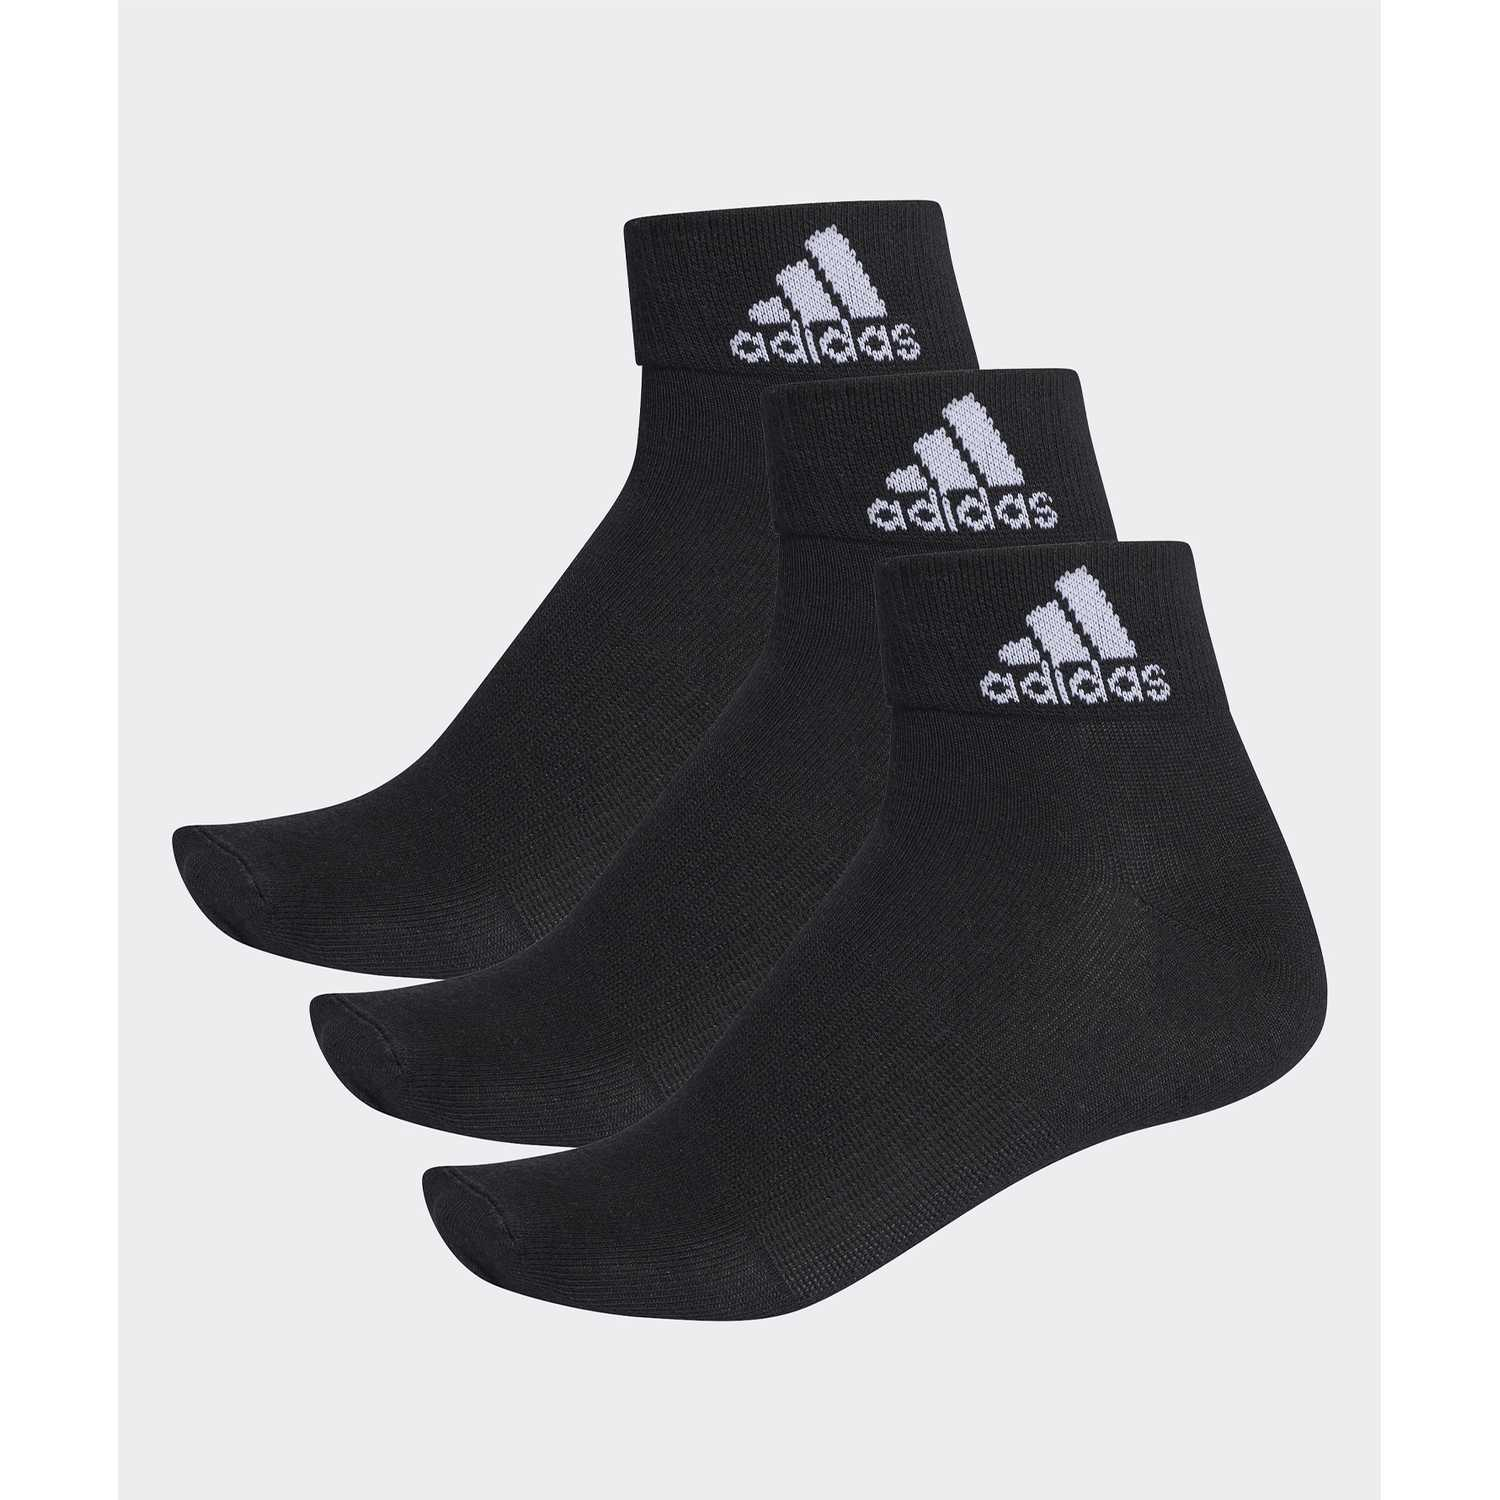 Deportivo de Mujer Adidas Negro per ankle t 3pp